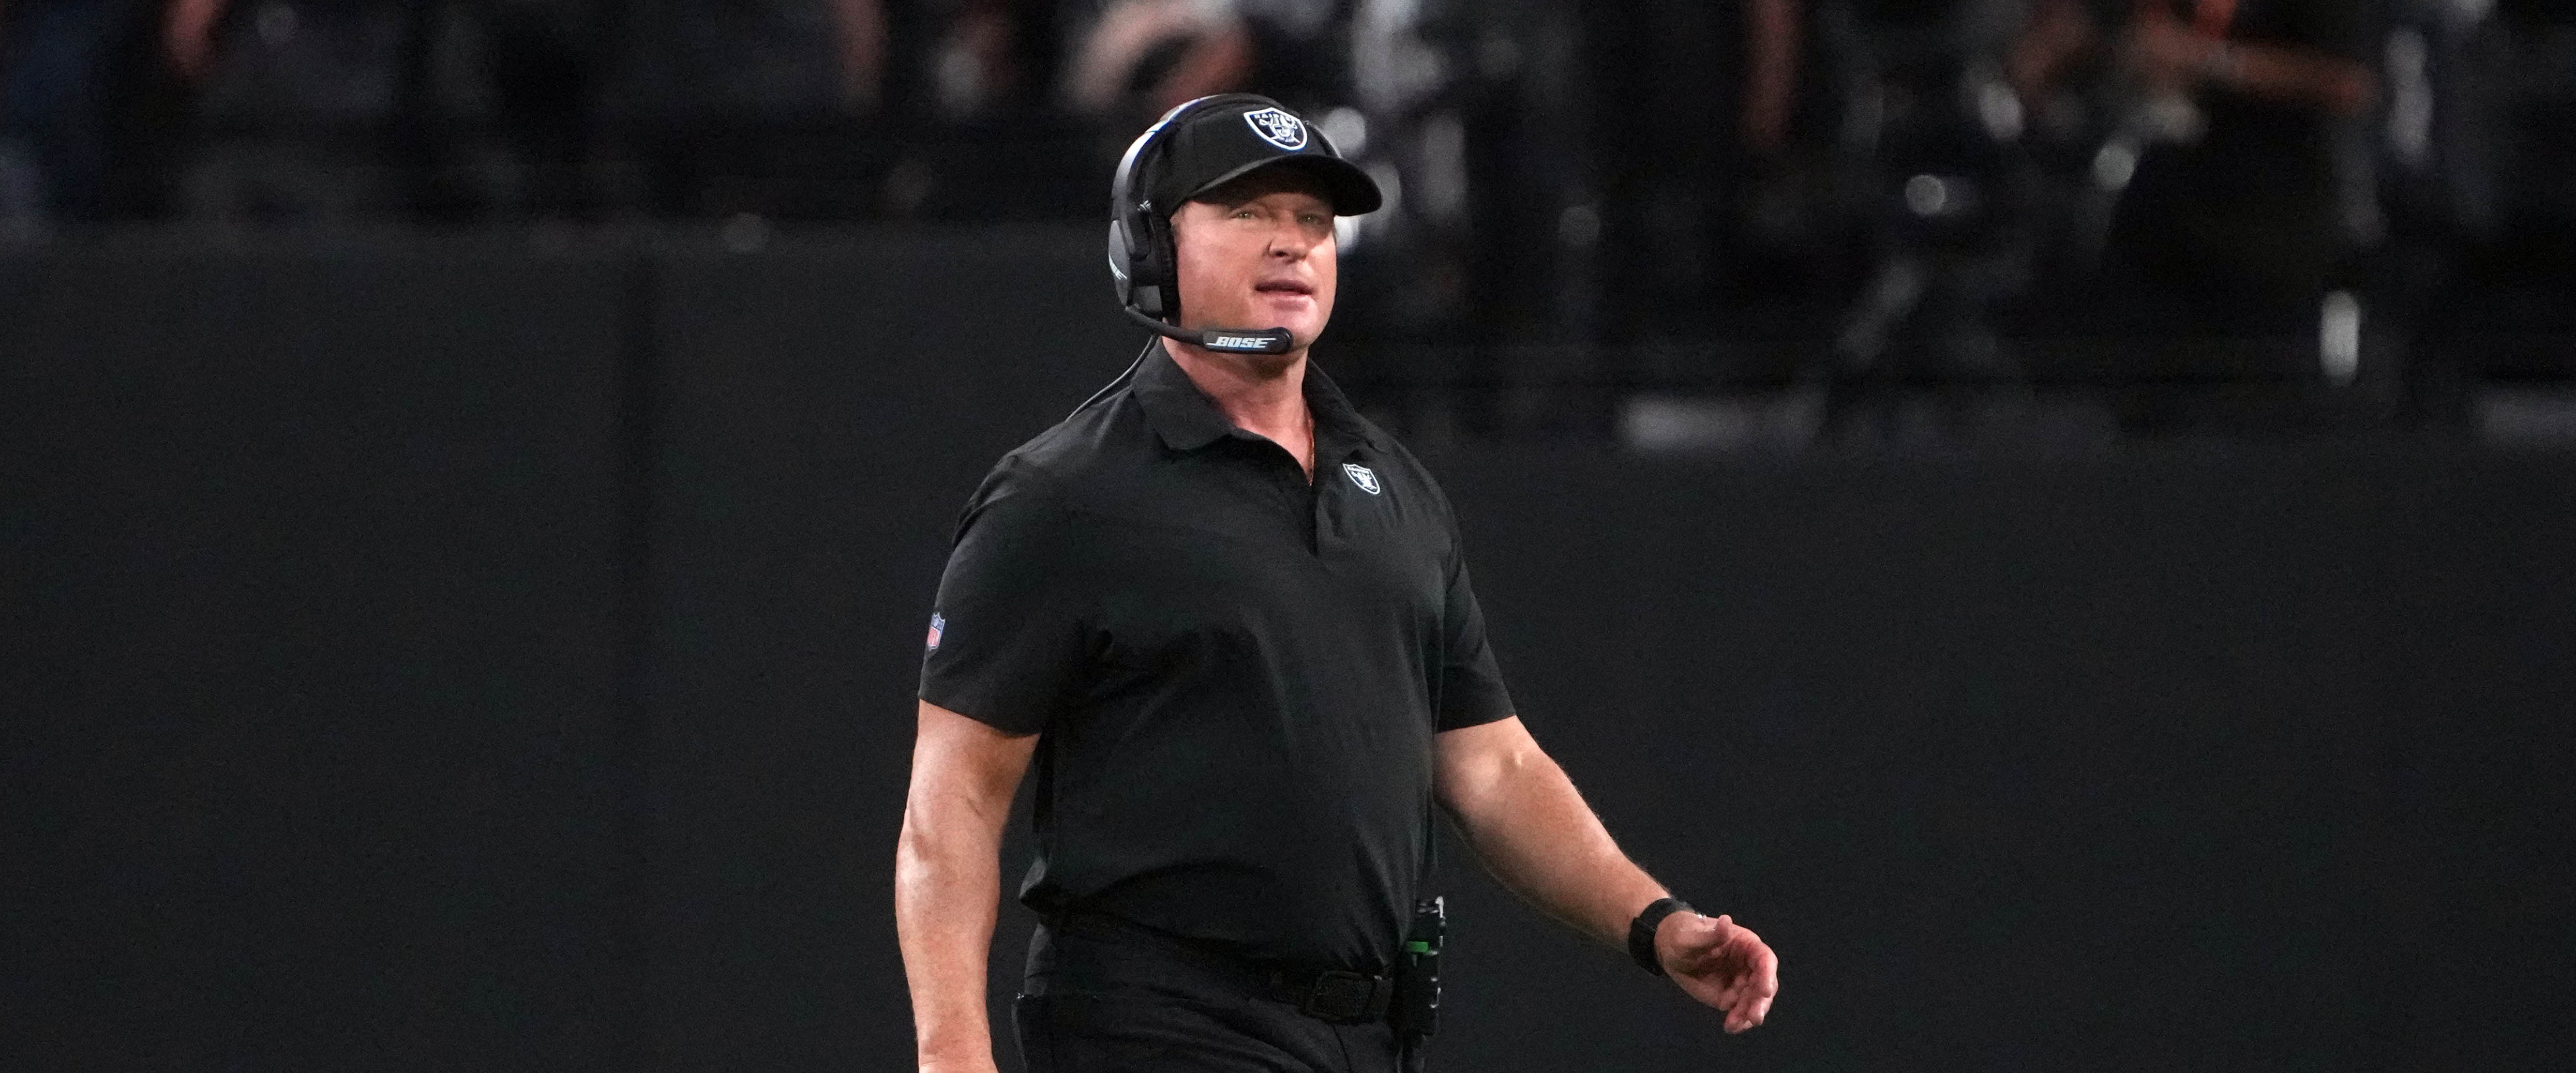 A timeline of events - what led to Jon Gruden's resignation?